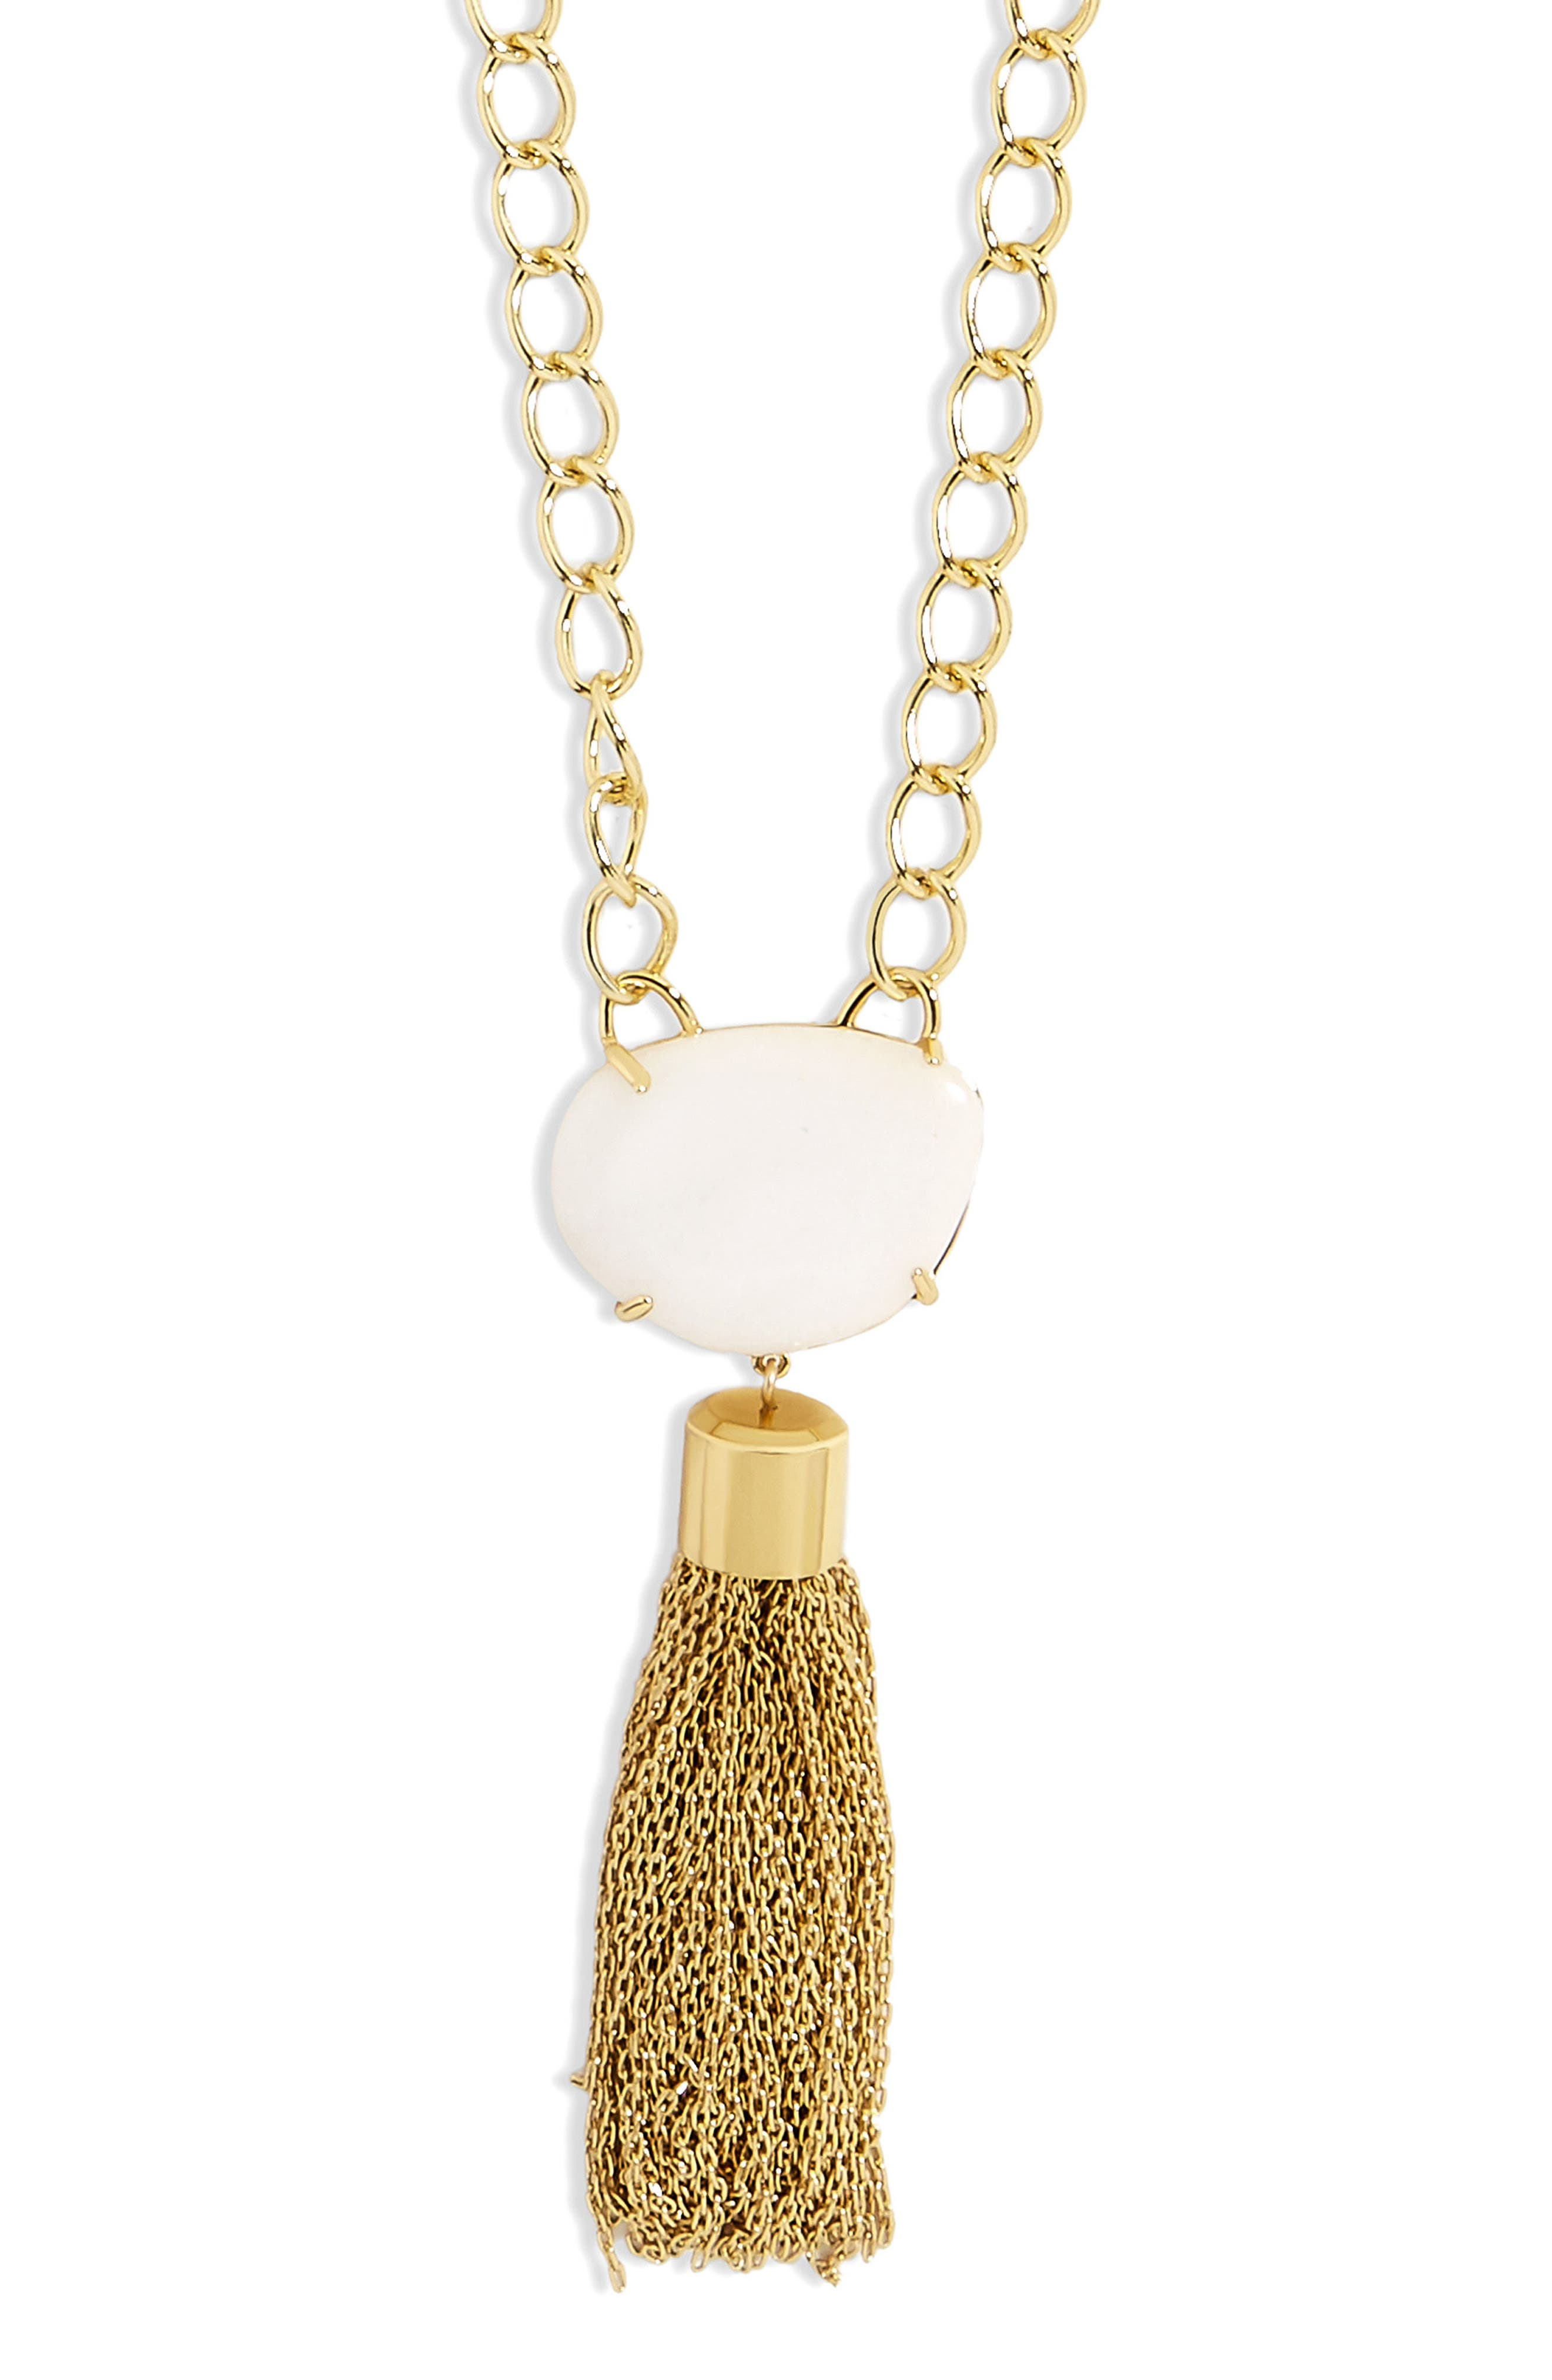 Carisma Chain Link Tassel Pendant Necklace,                             Alternate thumbnail 2, color,                             White